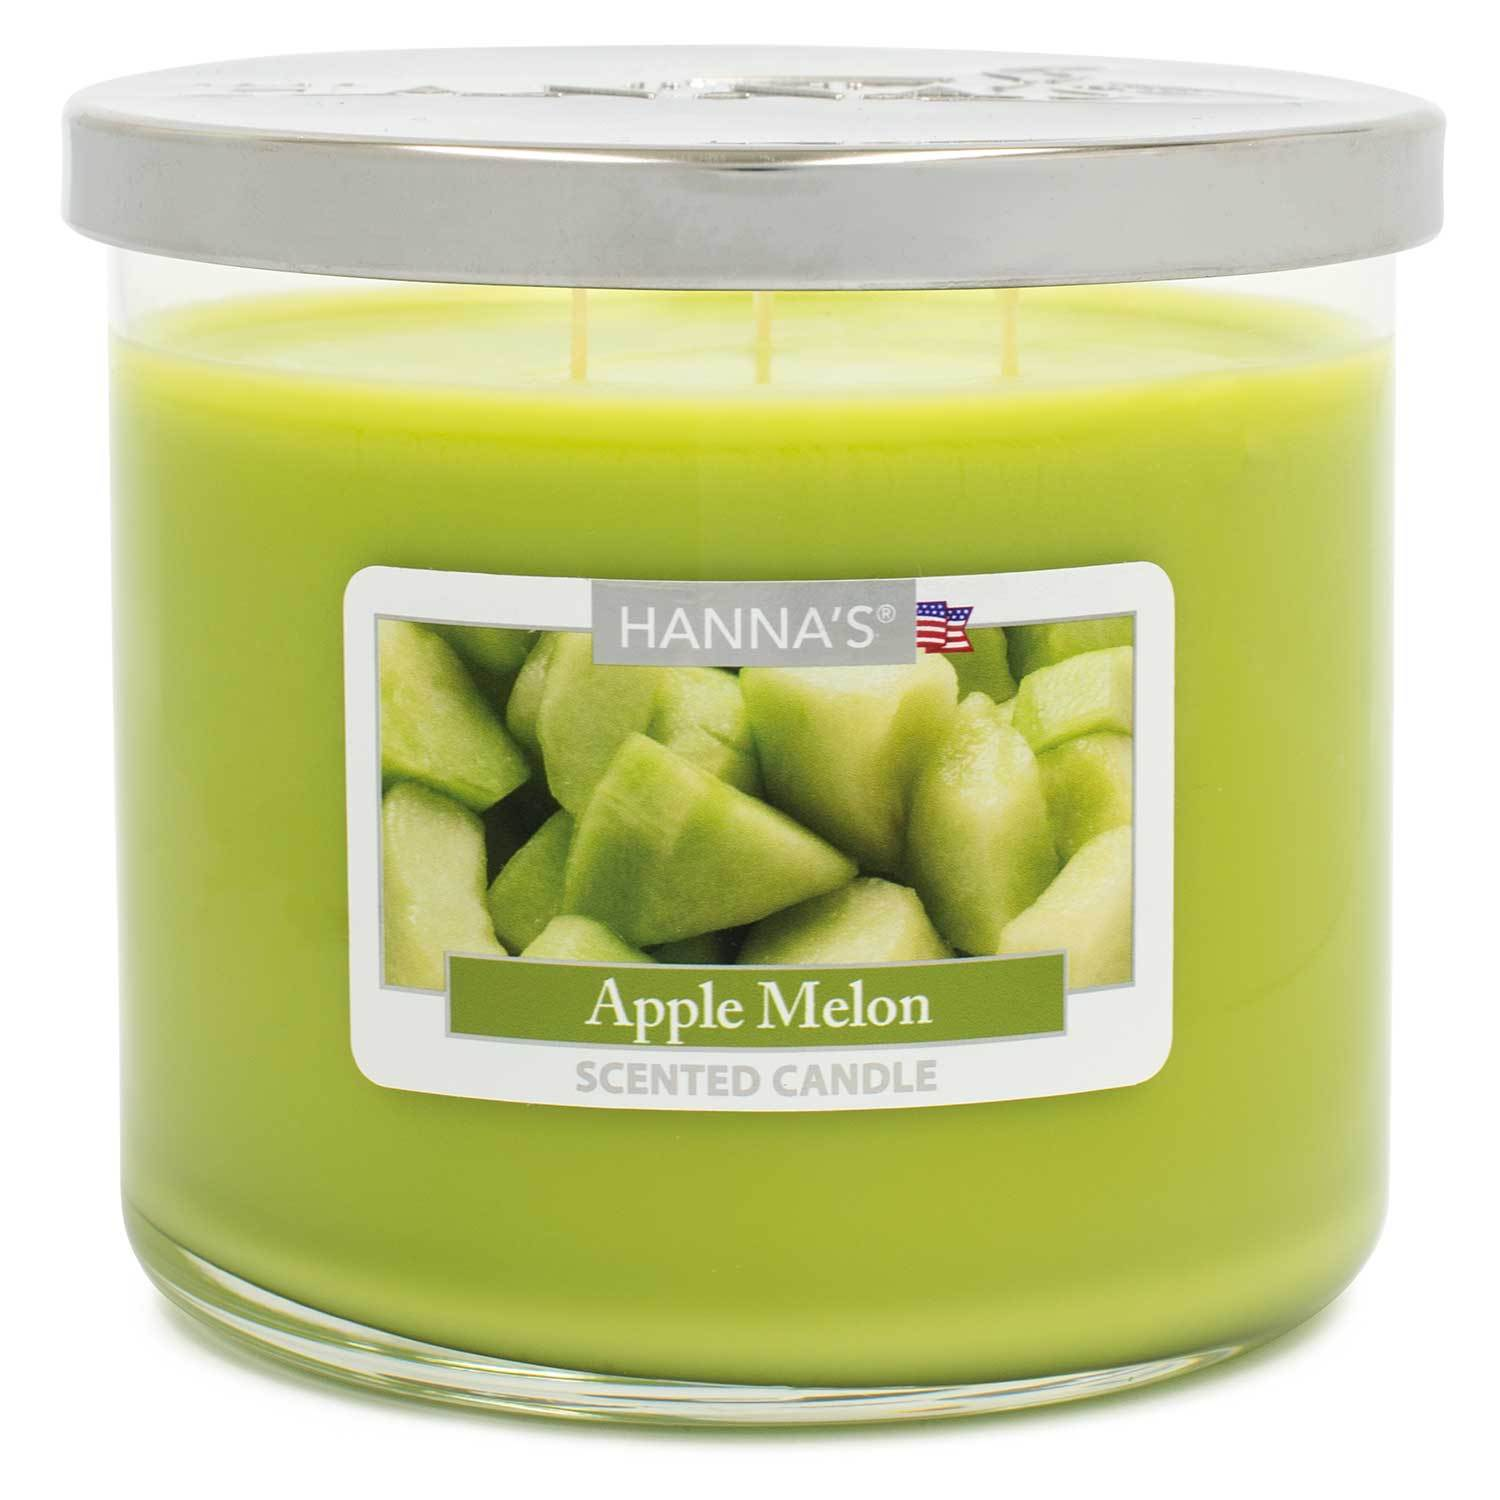 Apple Melon Scented Large 3 wick Candle